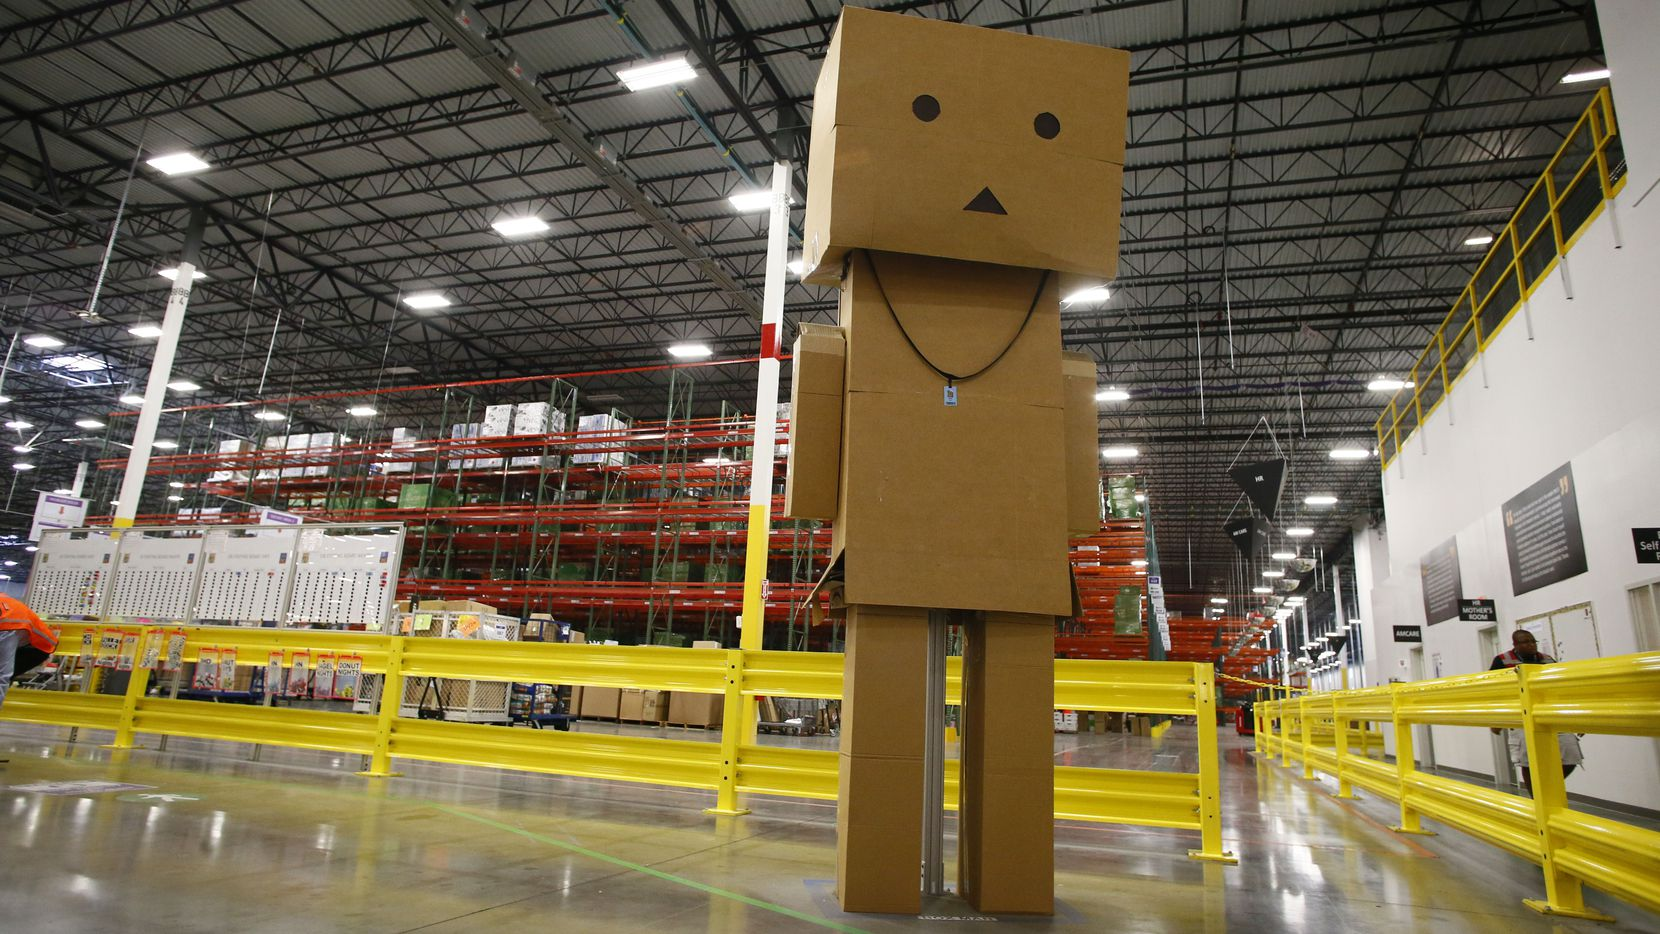 A giant box man stands at the entrance of the Amazon fulfillment center in Coppell. Amazon was among the 91 large profitable companies that did not pay federal income tax in 2018, according to a recent report.